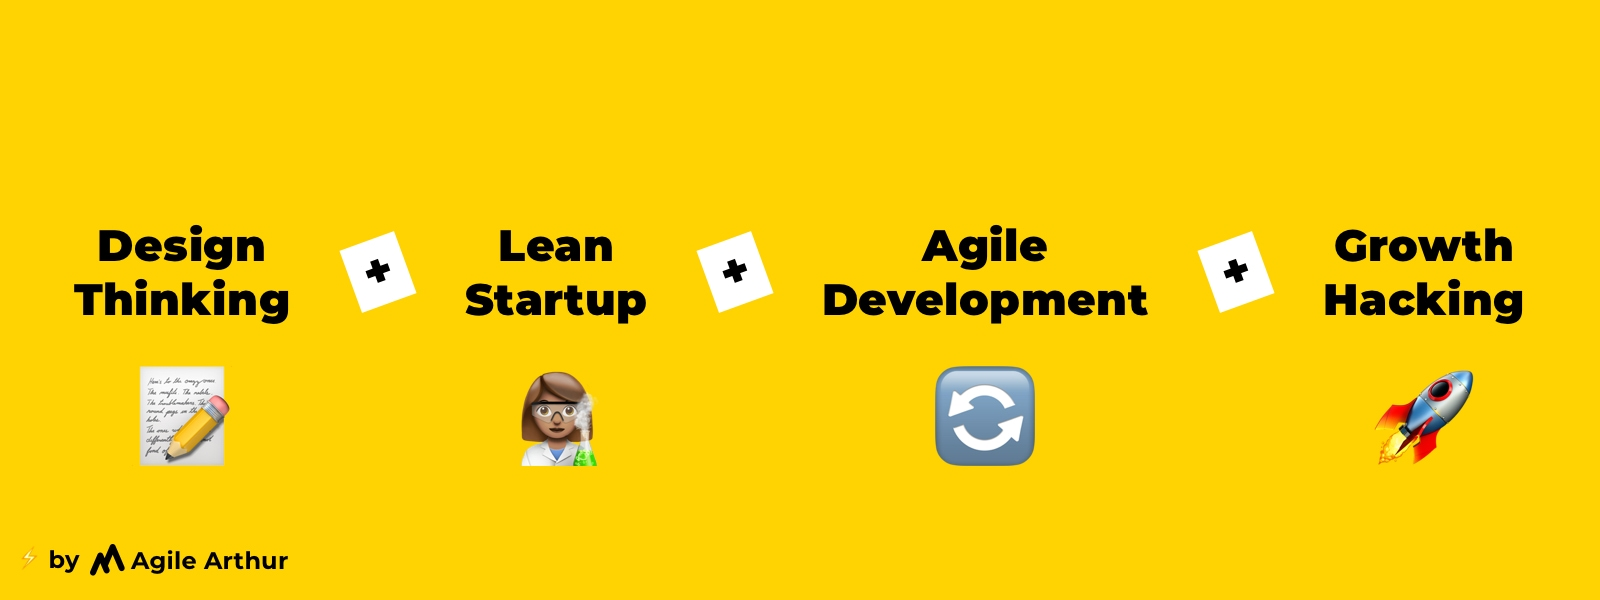 Design Thinking & Lean Startup & Agile Development & Growth Hacking